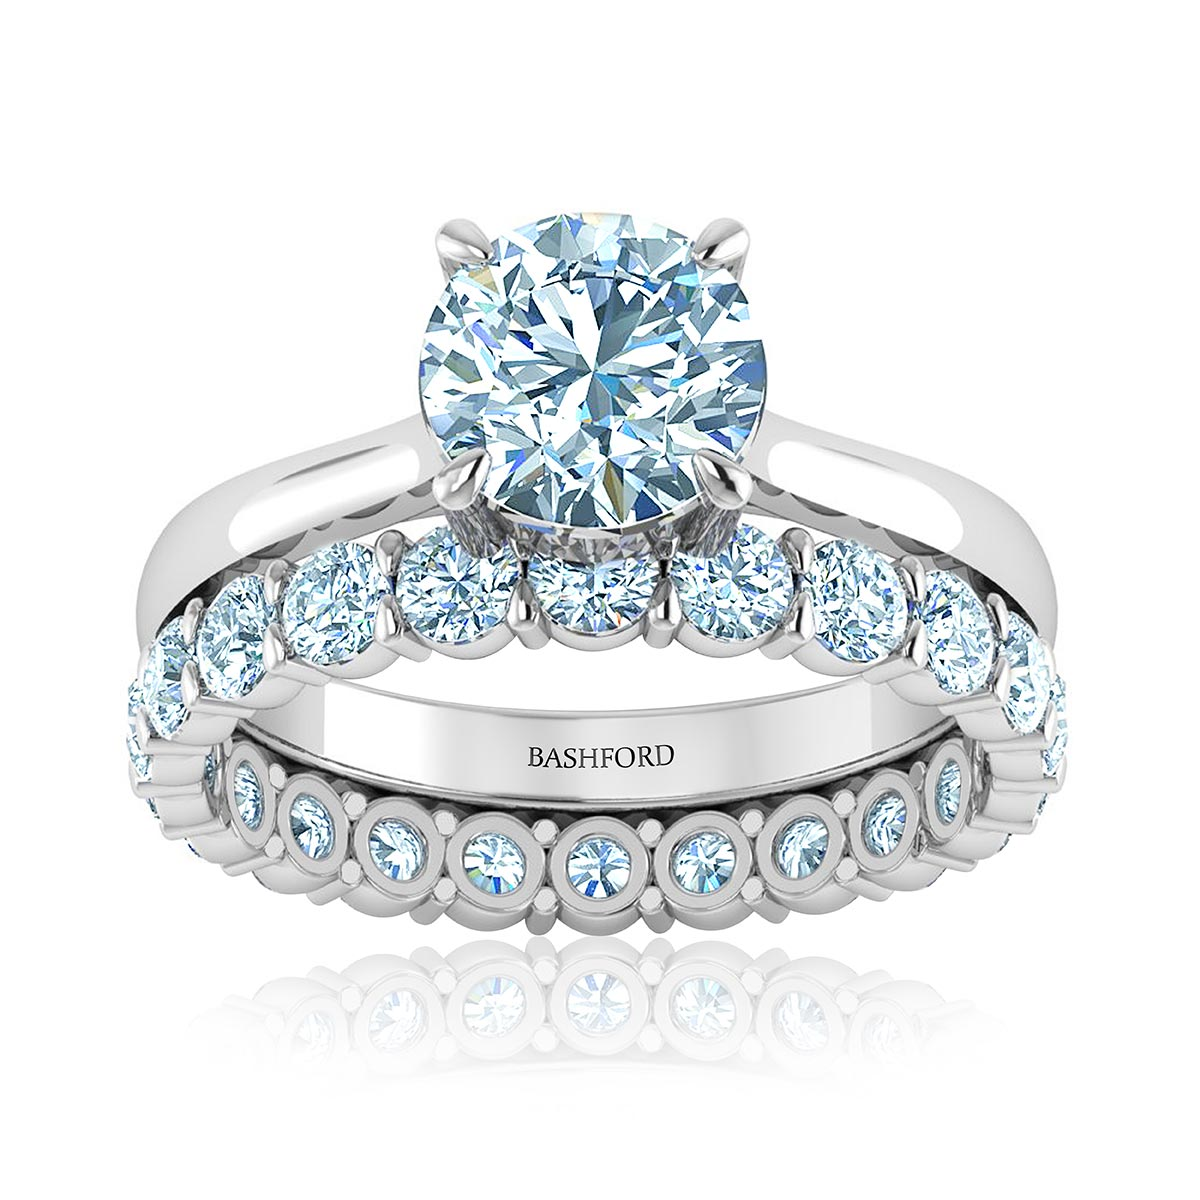 Aria Diamond Matched Set (with VS2, F, 1 Carat Round Diamond)